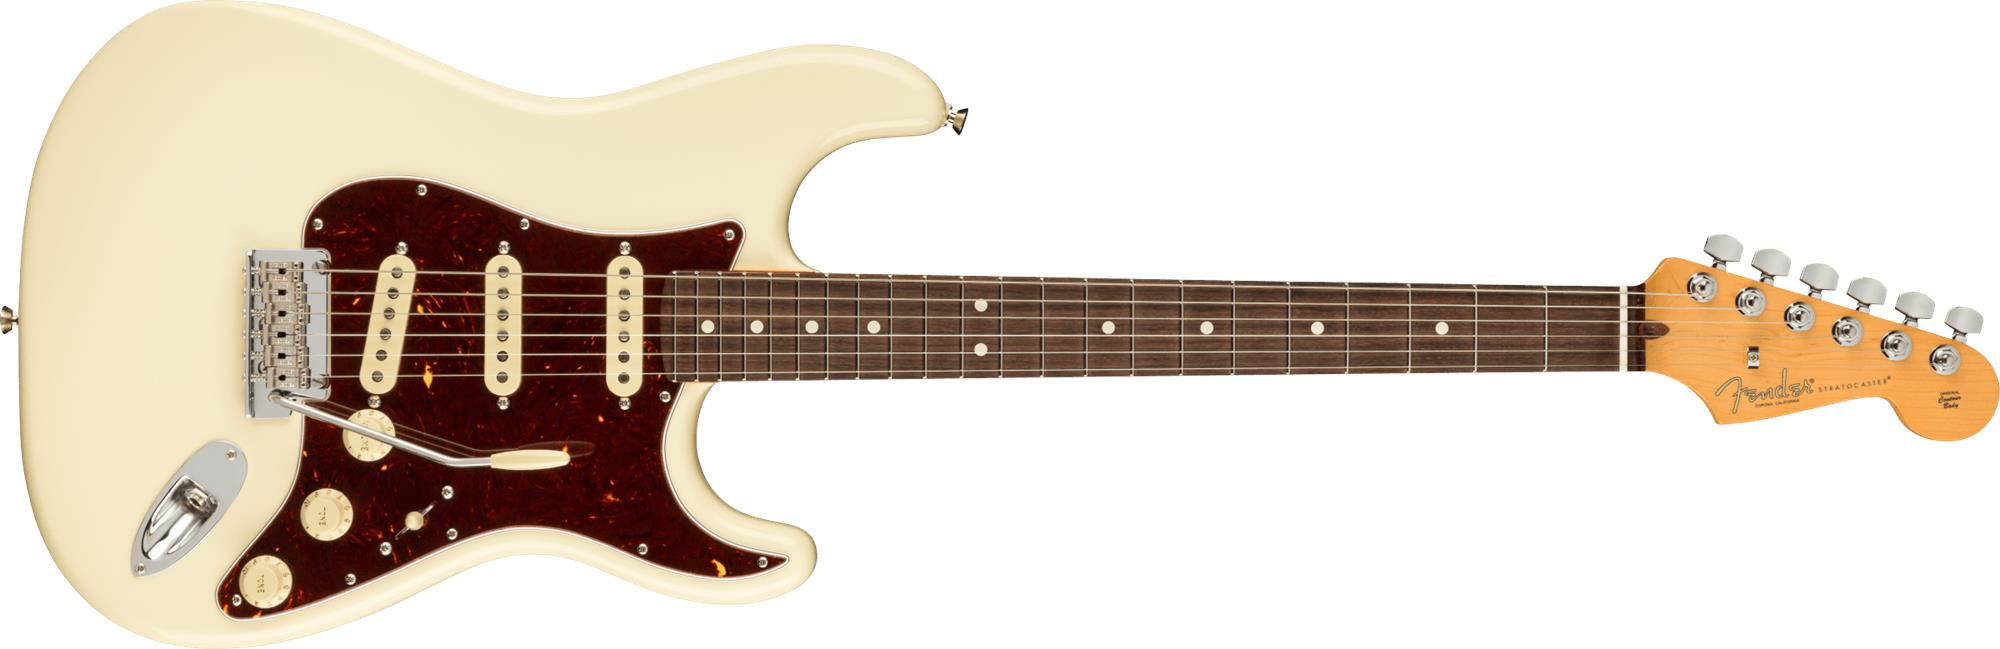 FENDER-American-Professional-II-Stratocaster-RW-Olympic-White-0113900705-sku-24224